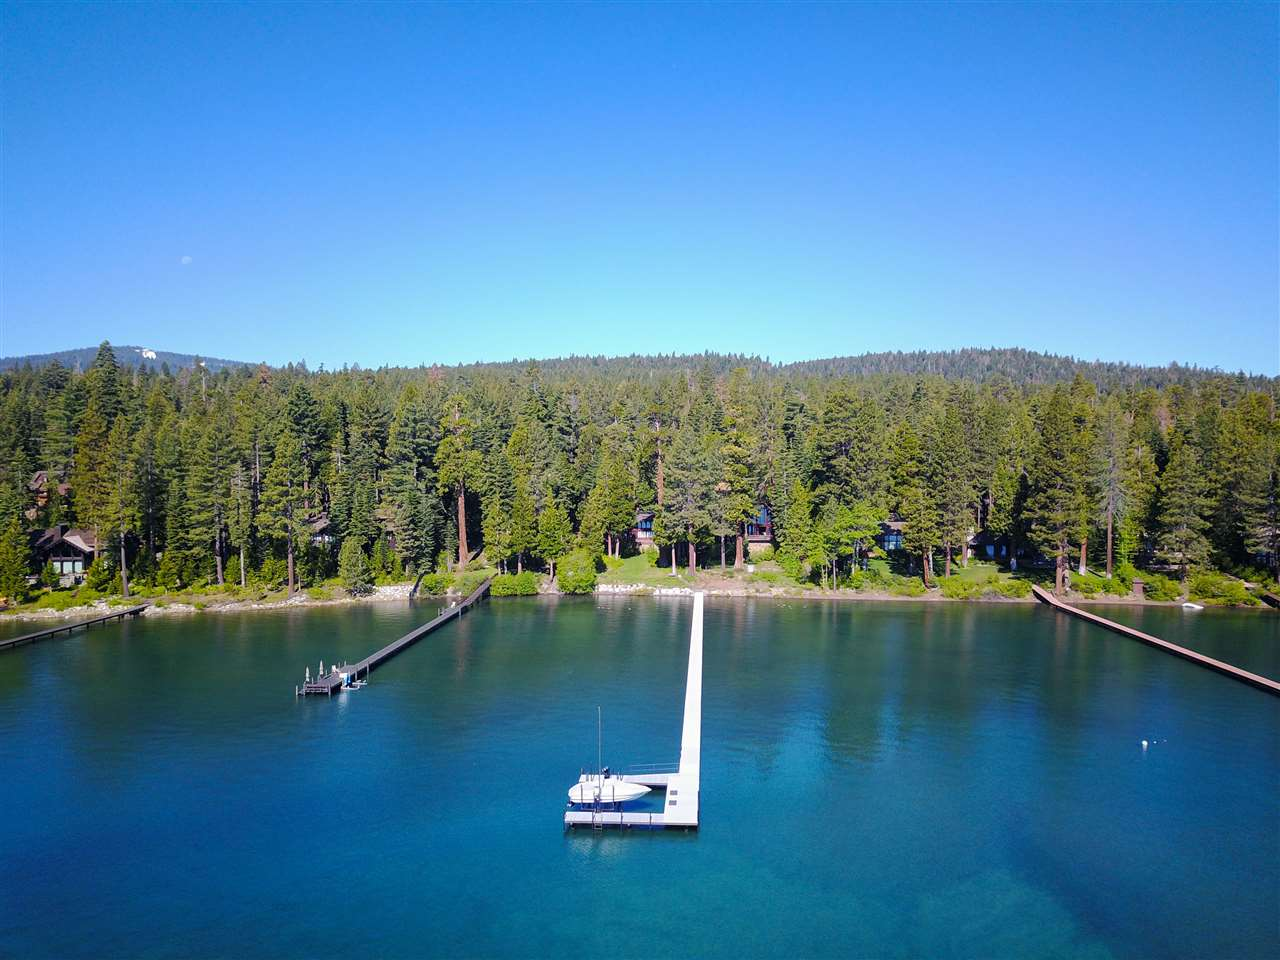 Casa Unifamiliar por un Venta en 850 West Lake Boulevard South Lake Tahoe, California 96145 Estados Unidos